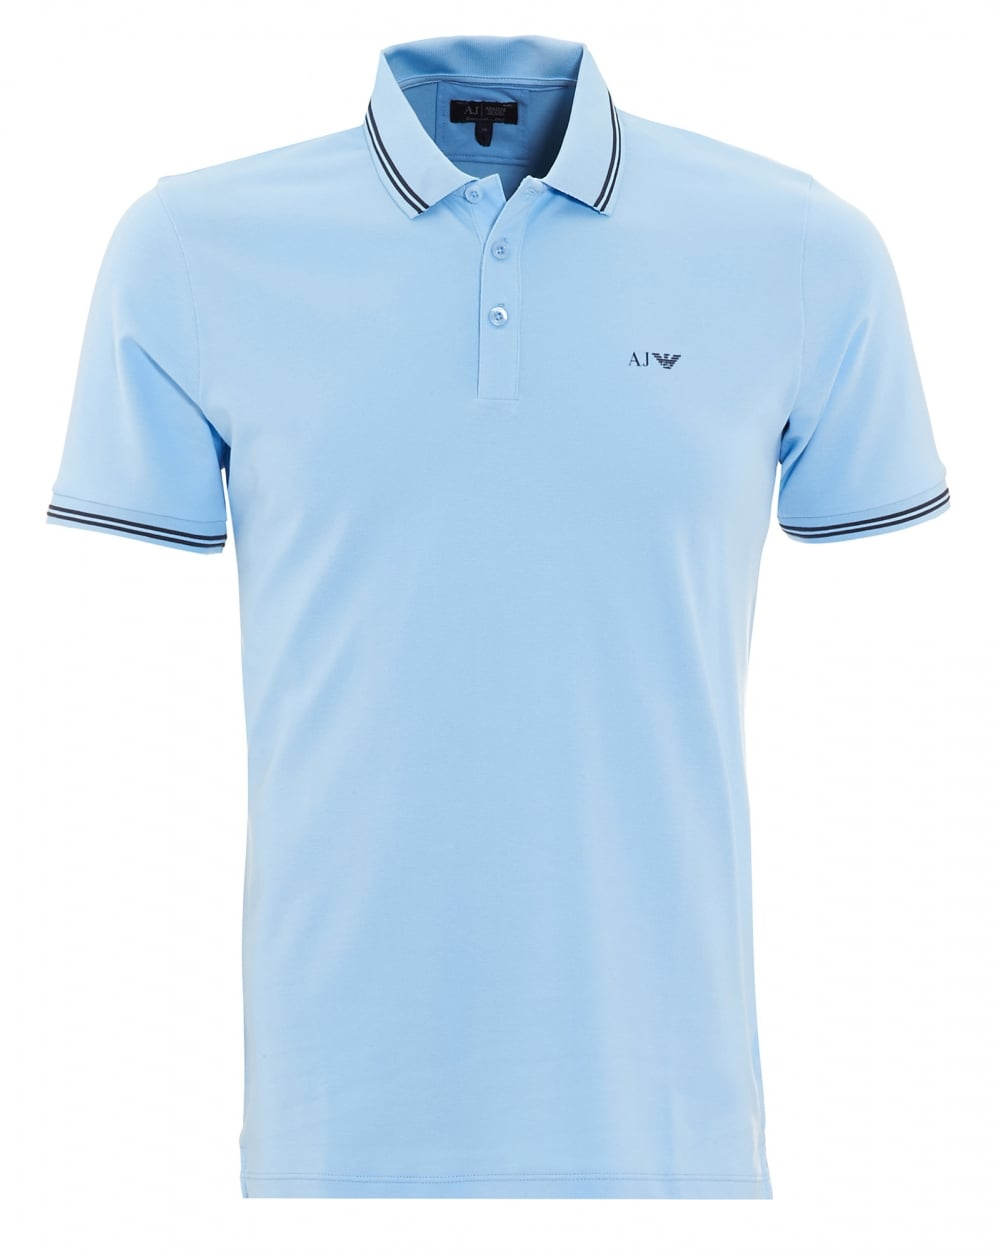 82bcfaa897297 Armani Jeans Mens Tipped Polo Shirt Sky Blue Short Sleeved Polo